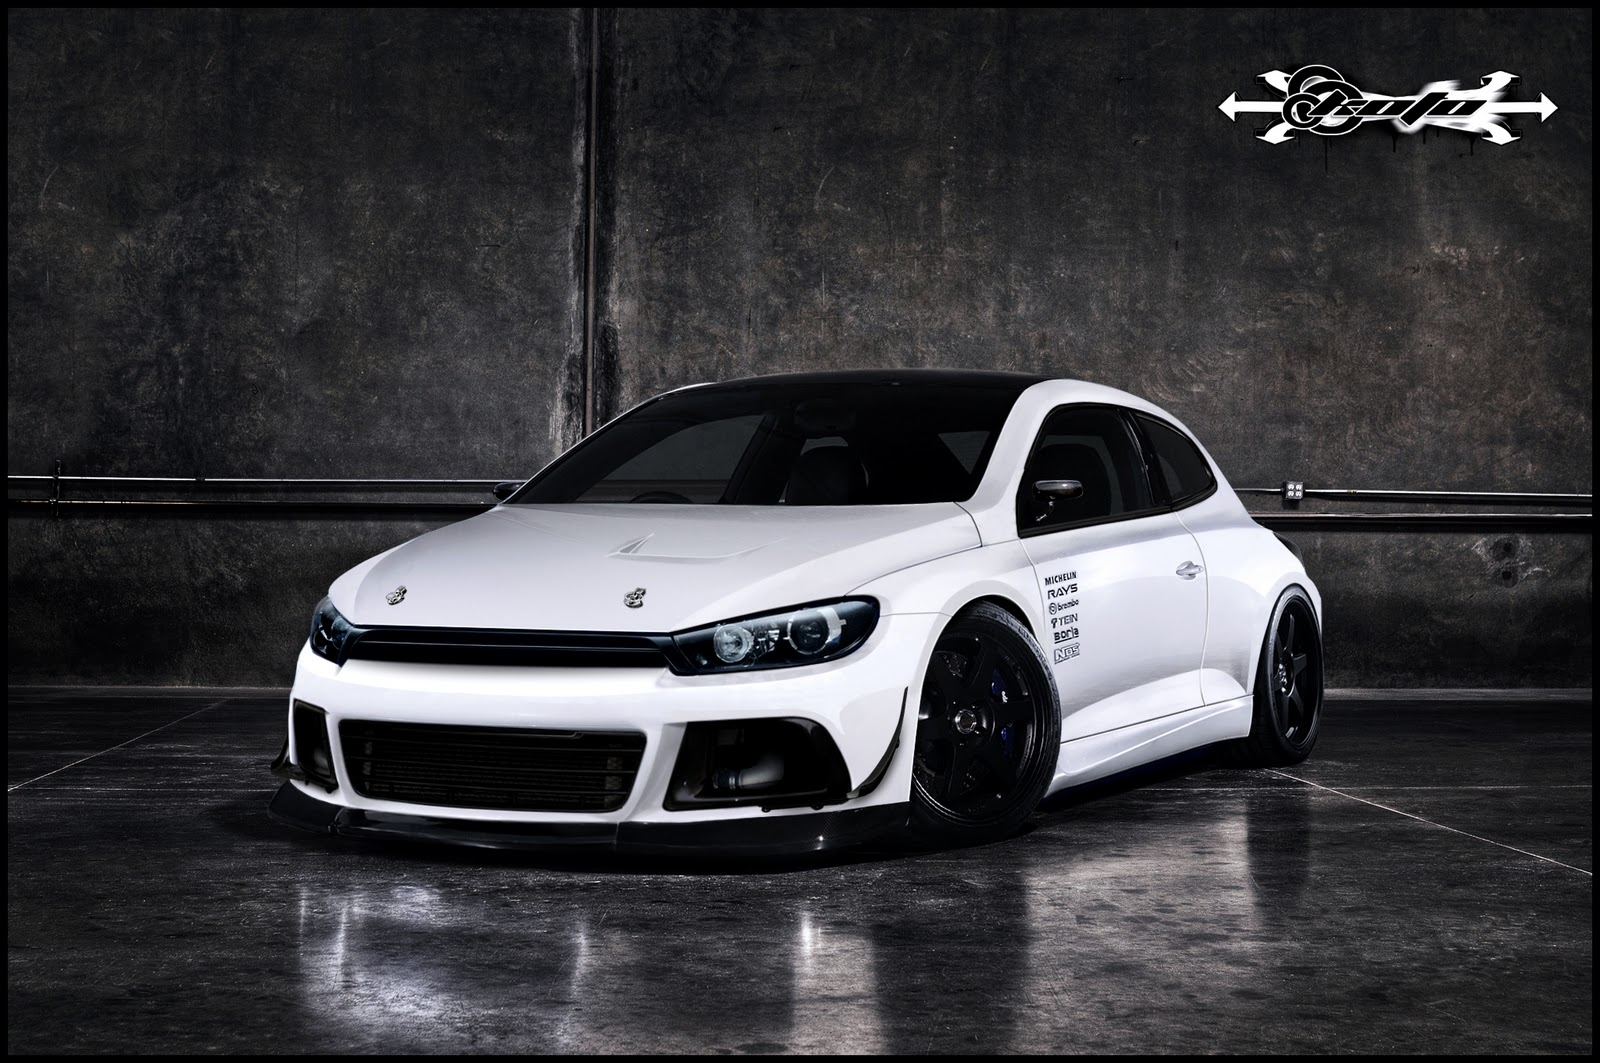 Scirocco Wallpapers - Full HD wallpaper search